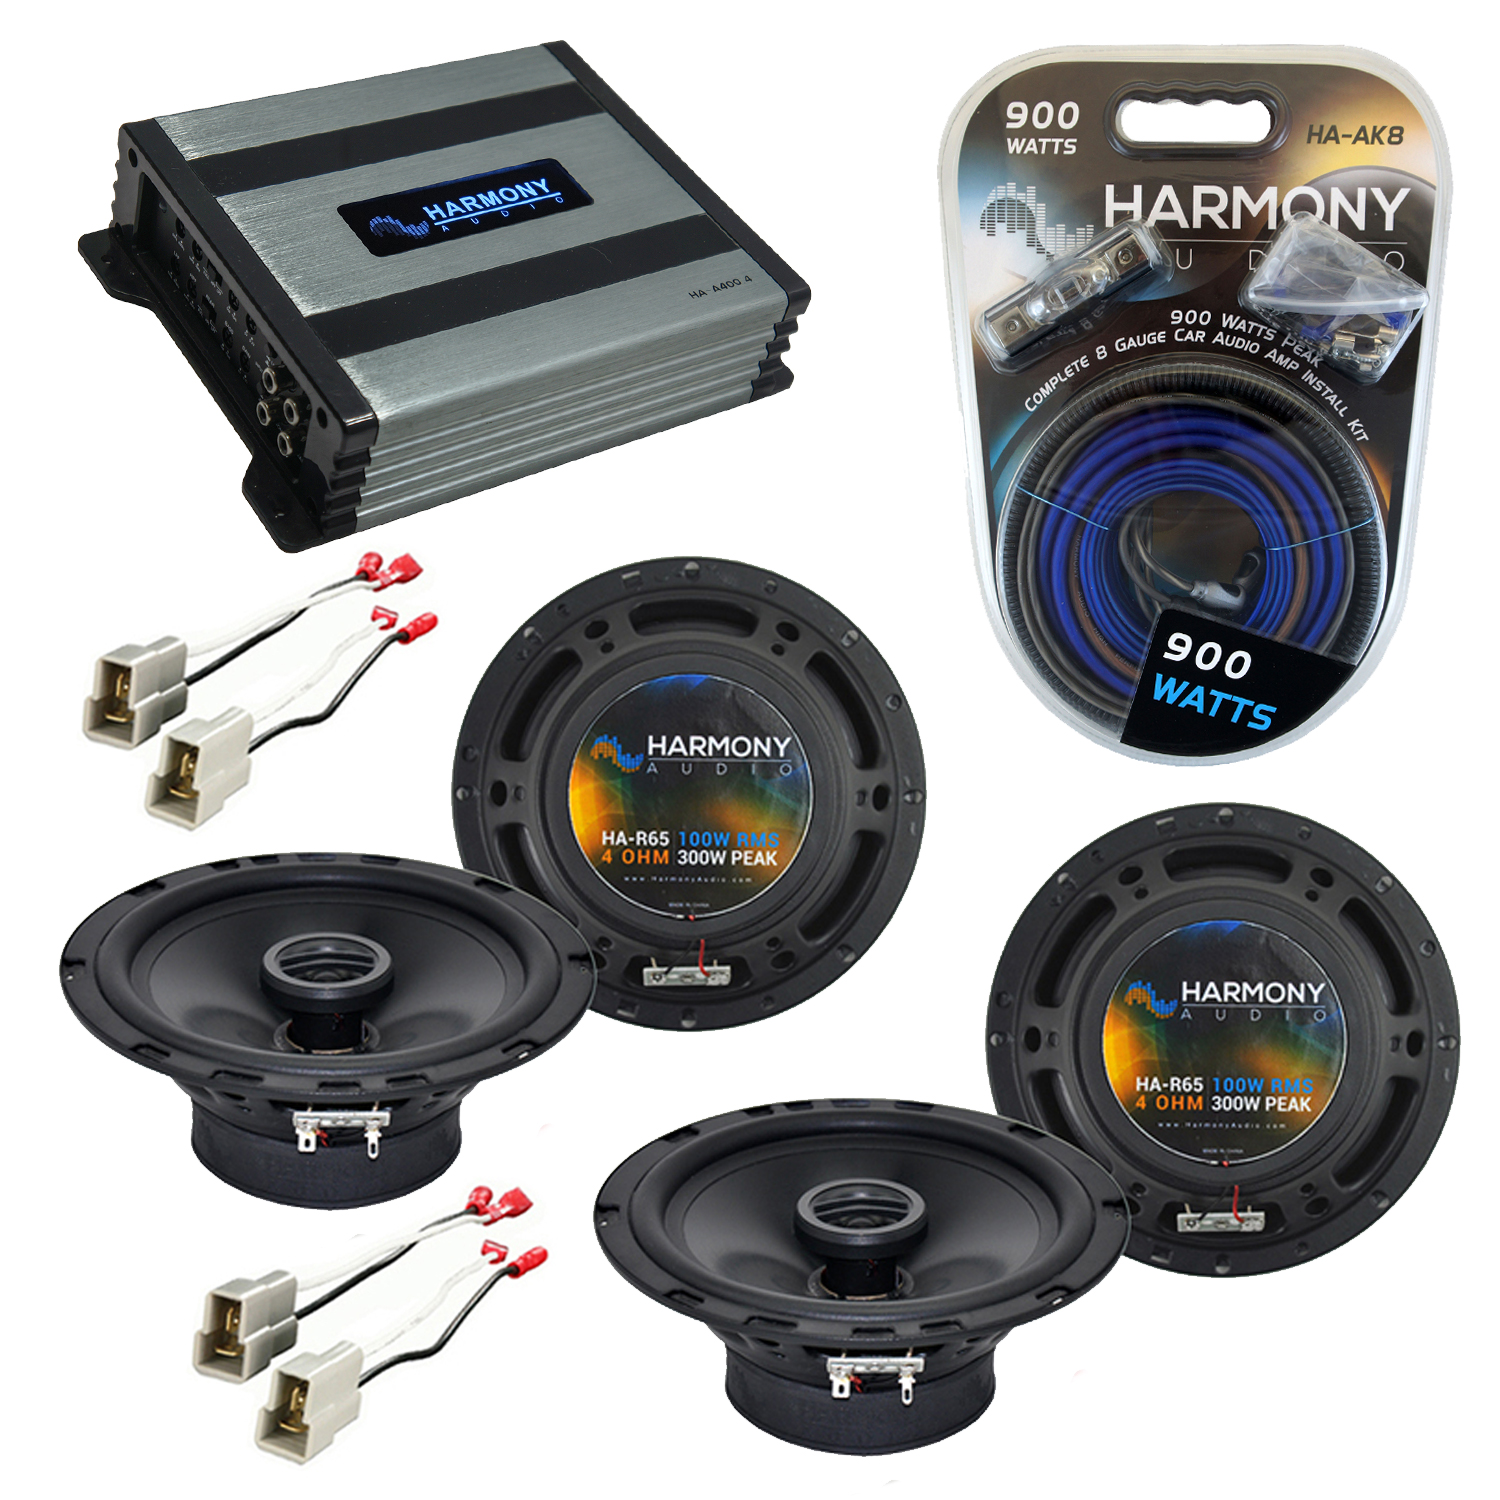 Compatible with Subaru Outback 2000-2004 Factory Speaker Replacement Harmony (2) R65 & Harmony HA-A400.4